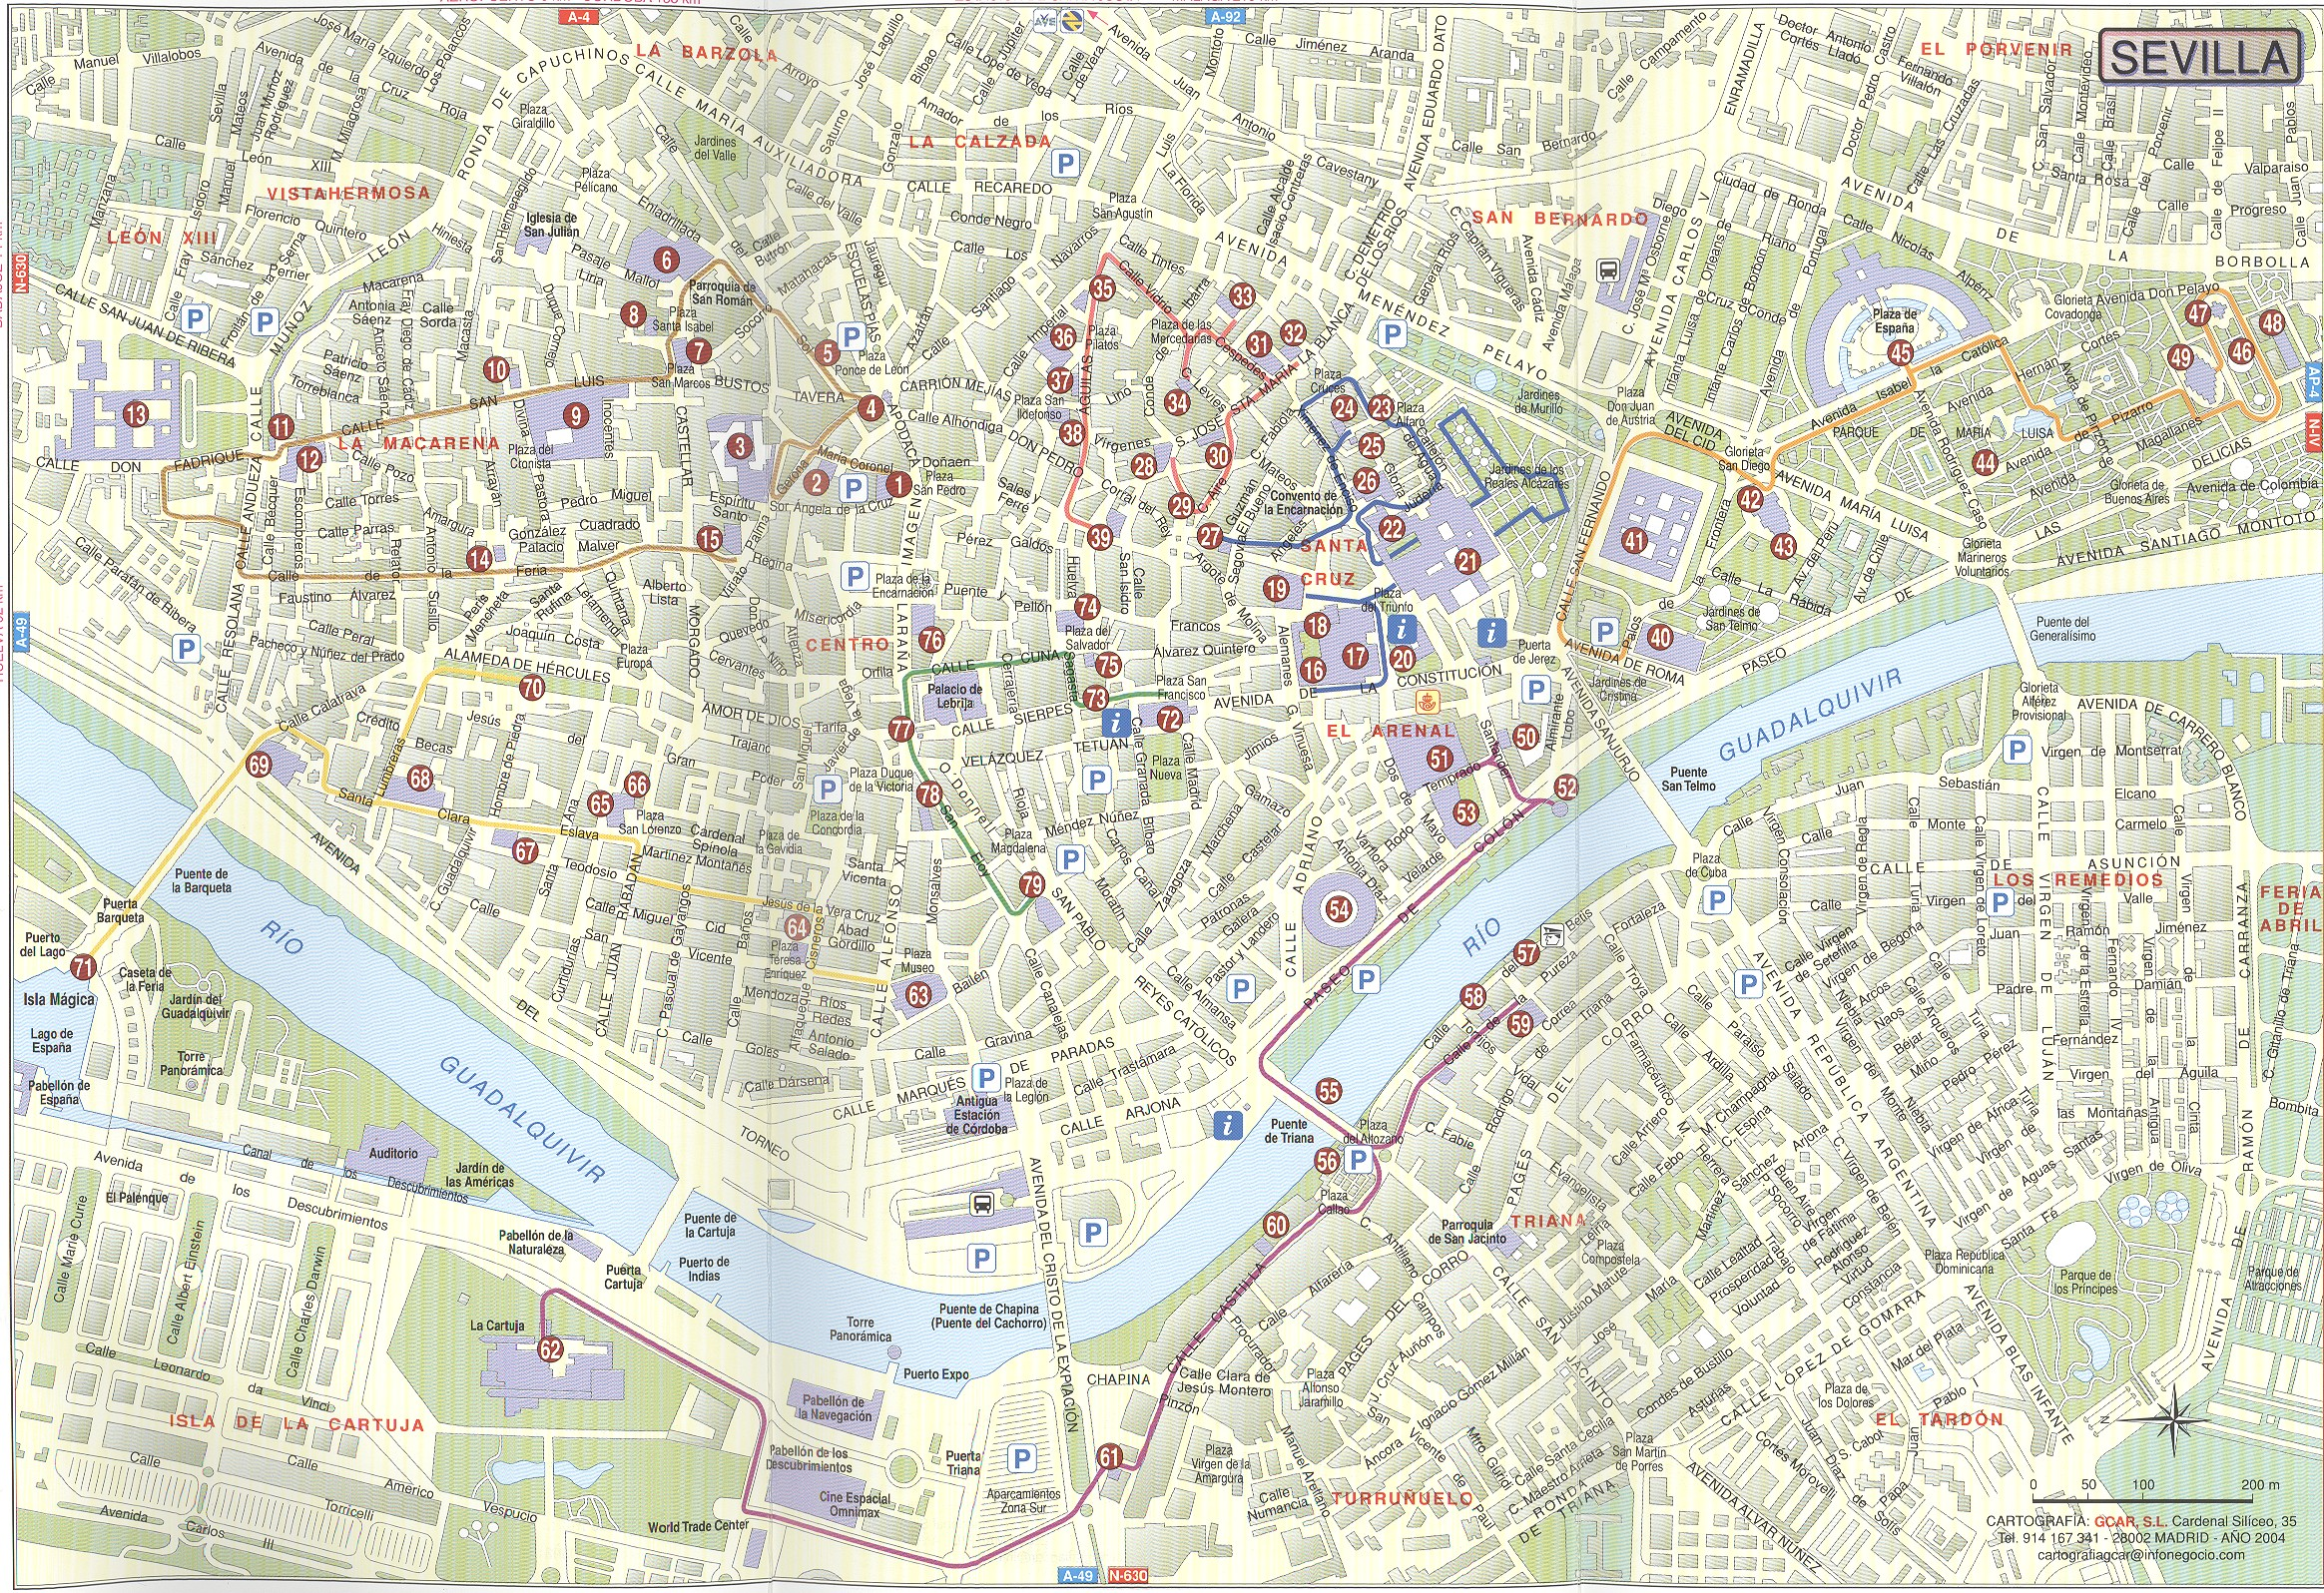 Seville streets map 2004